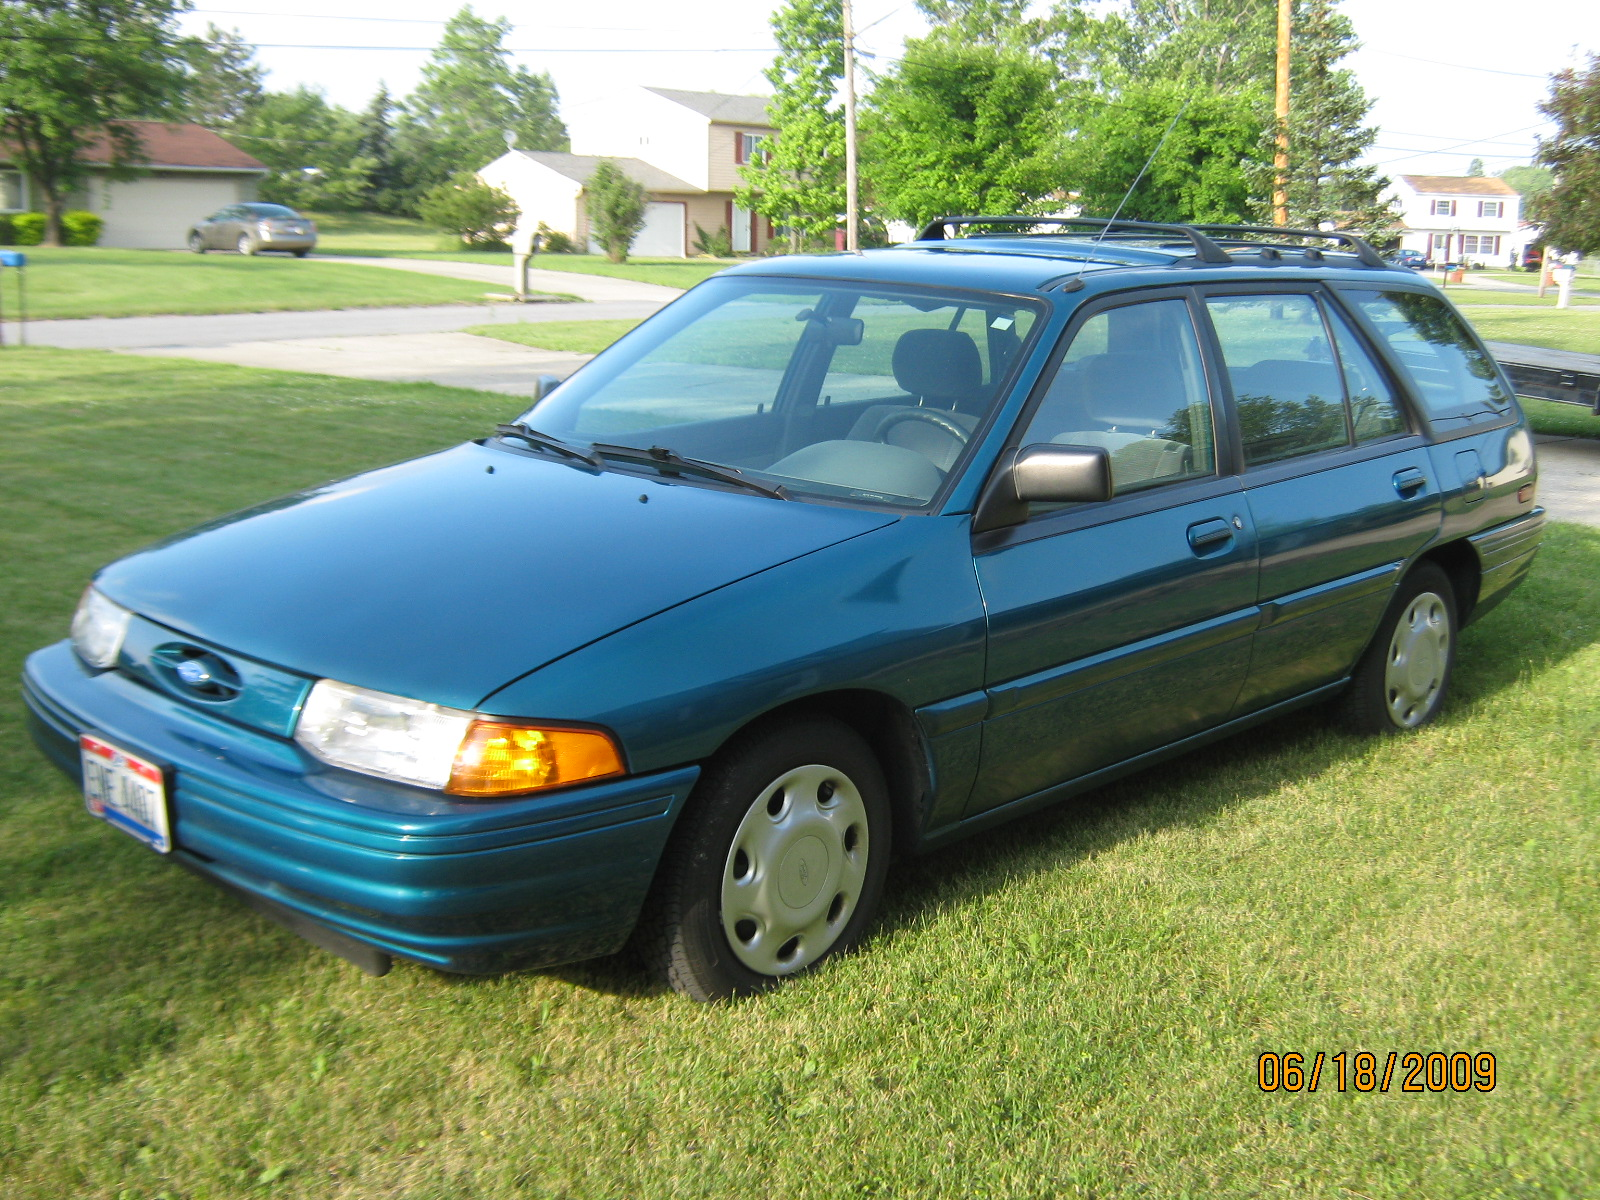 Used 1994 Ford Escort Wagon Pricing - For Sale Edmunds